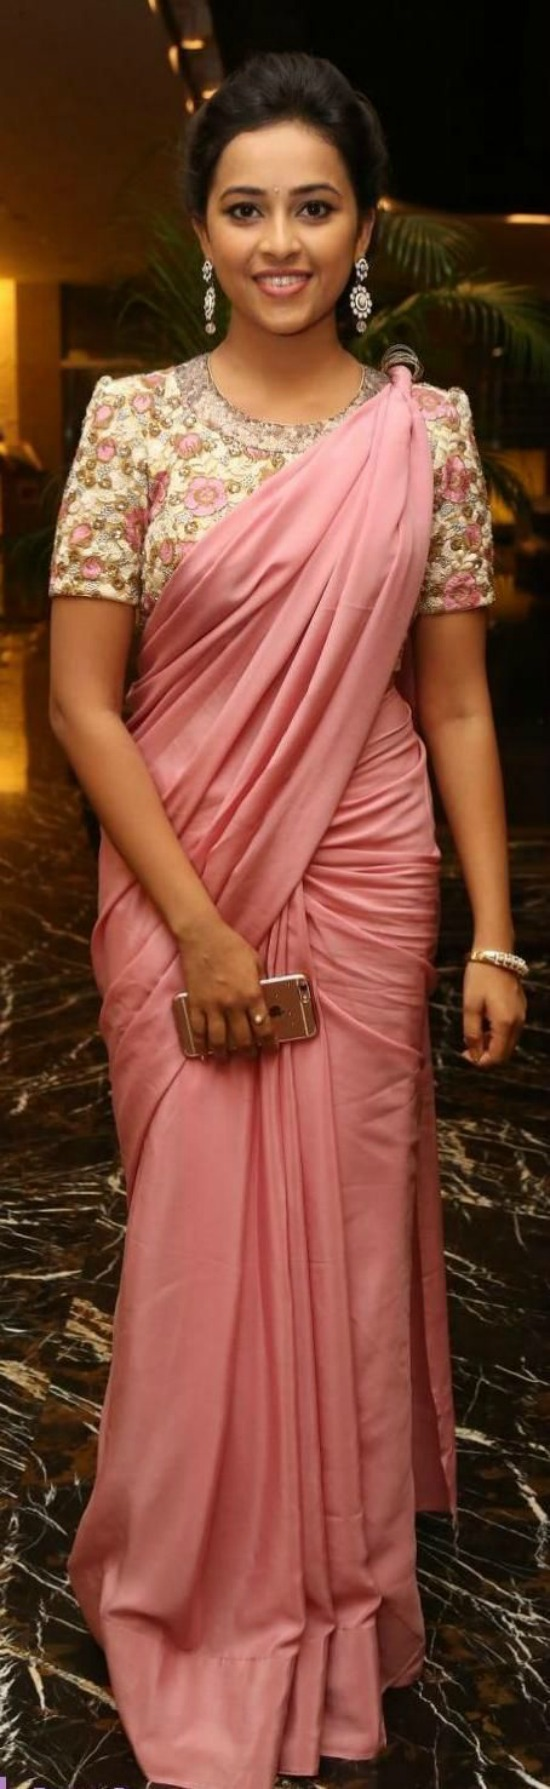 Sridivya In Blush Pink Saree With Embroidery Blouse